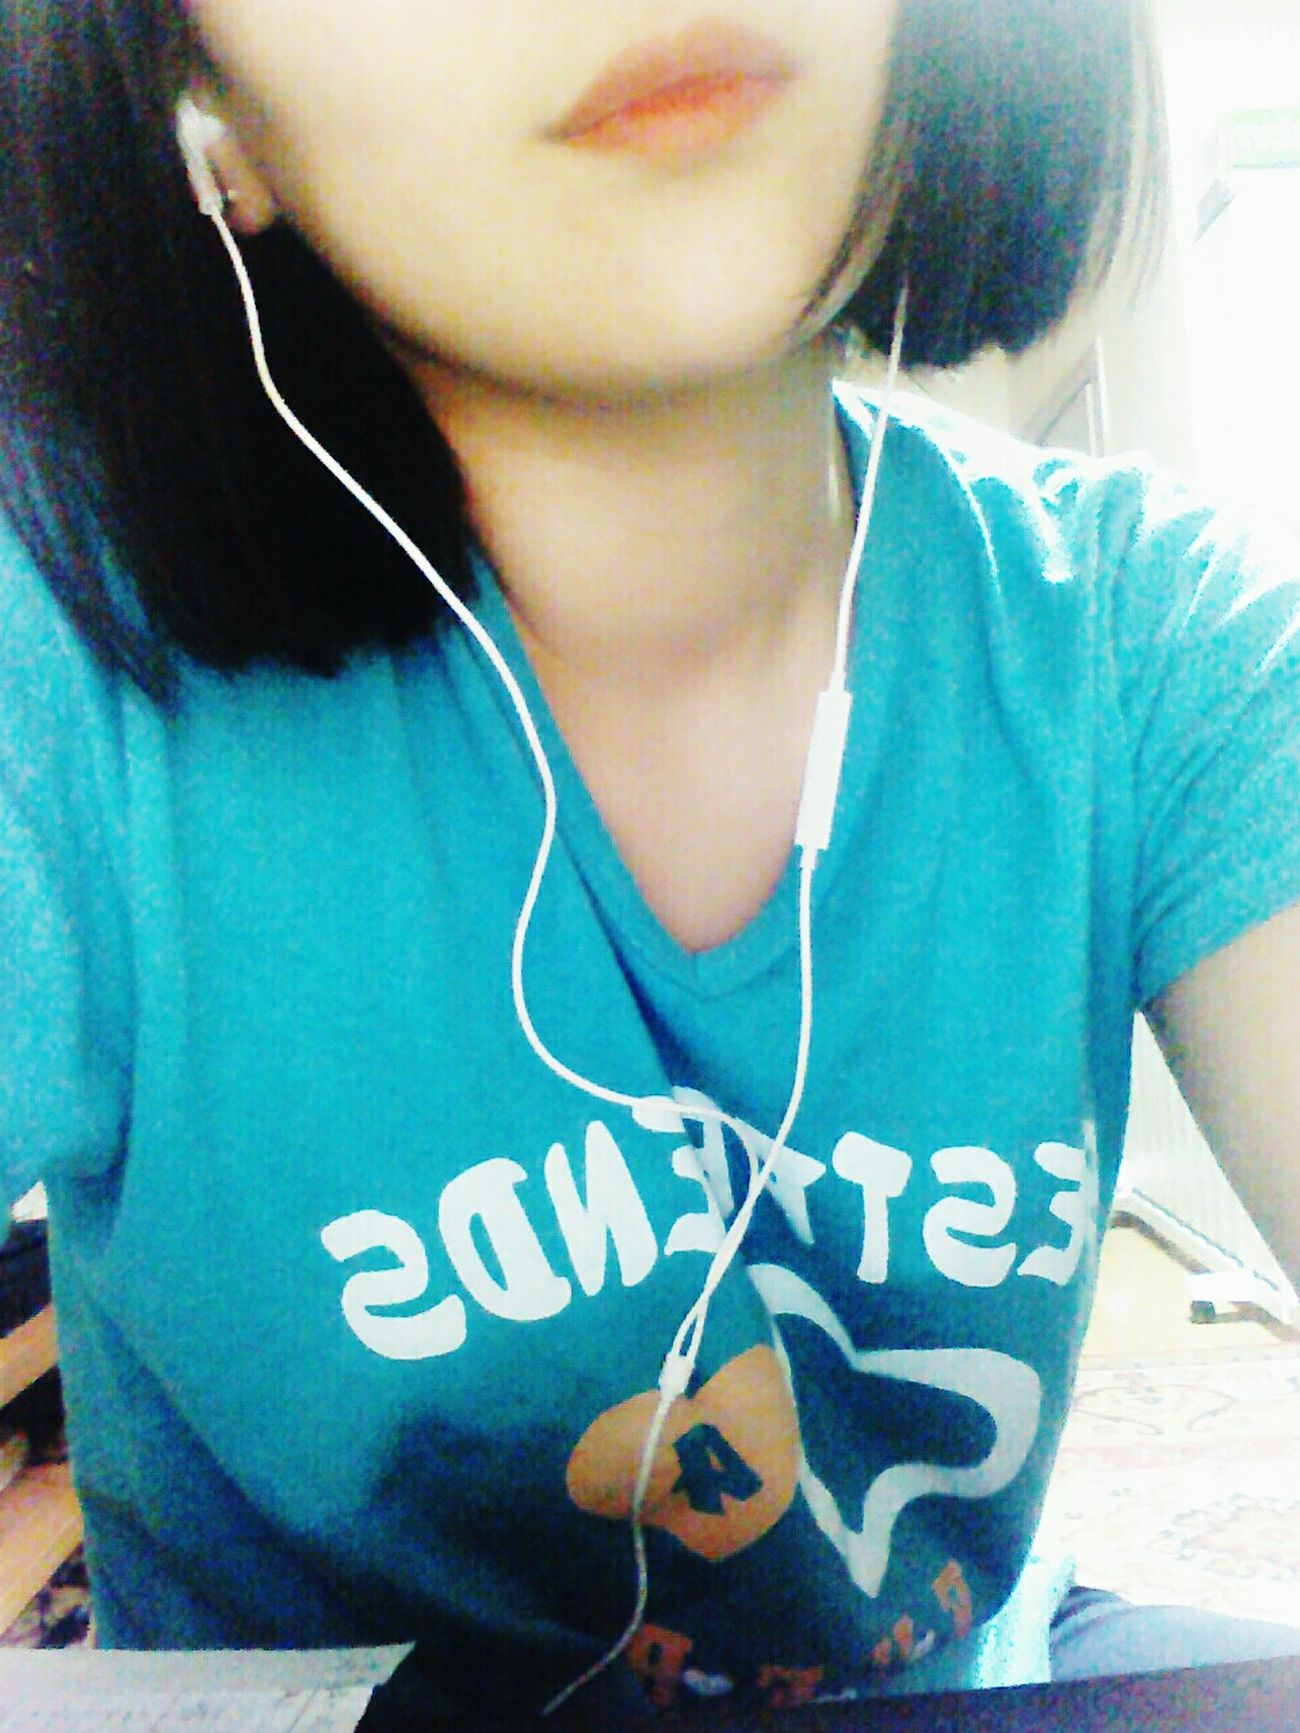 Red Lips Earphones In ❤ Selfie ✌ Half Me 😂 Short Hair Blue Shirt Best Friends Boring Time